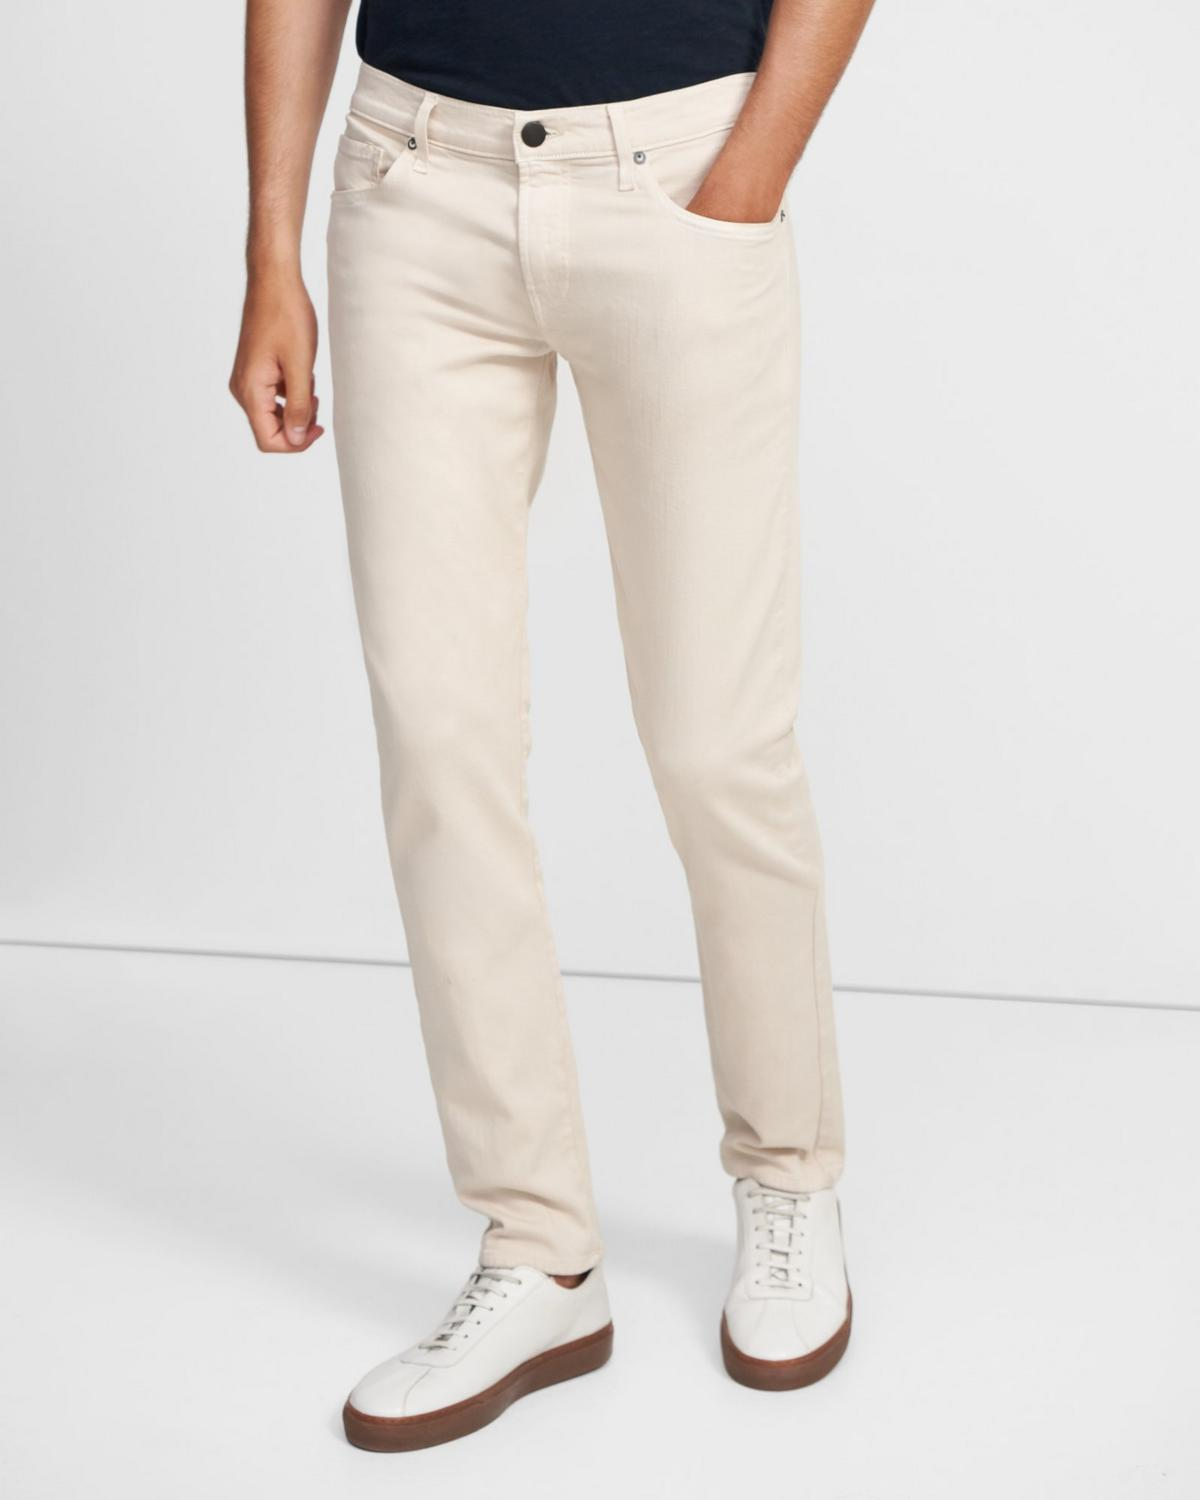 J Brand Tyler Slim Fit Jean in Seriously Soft Denim